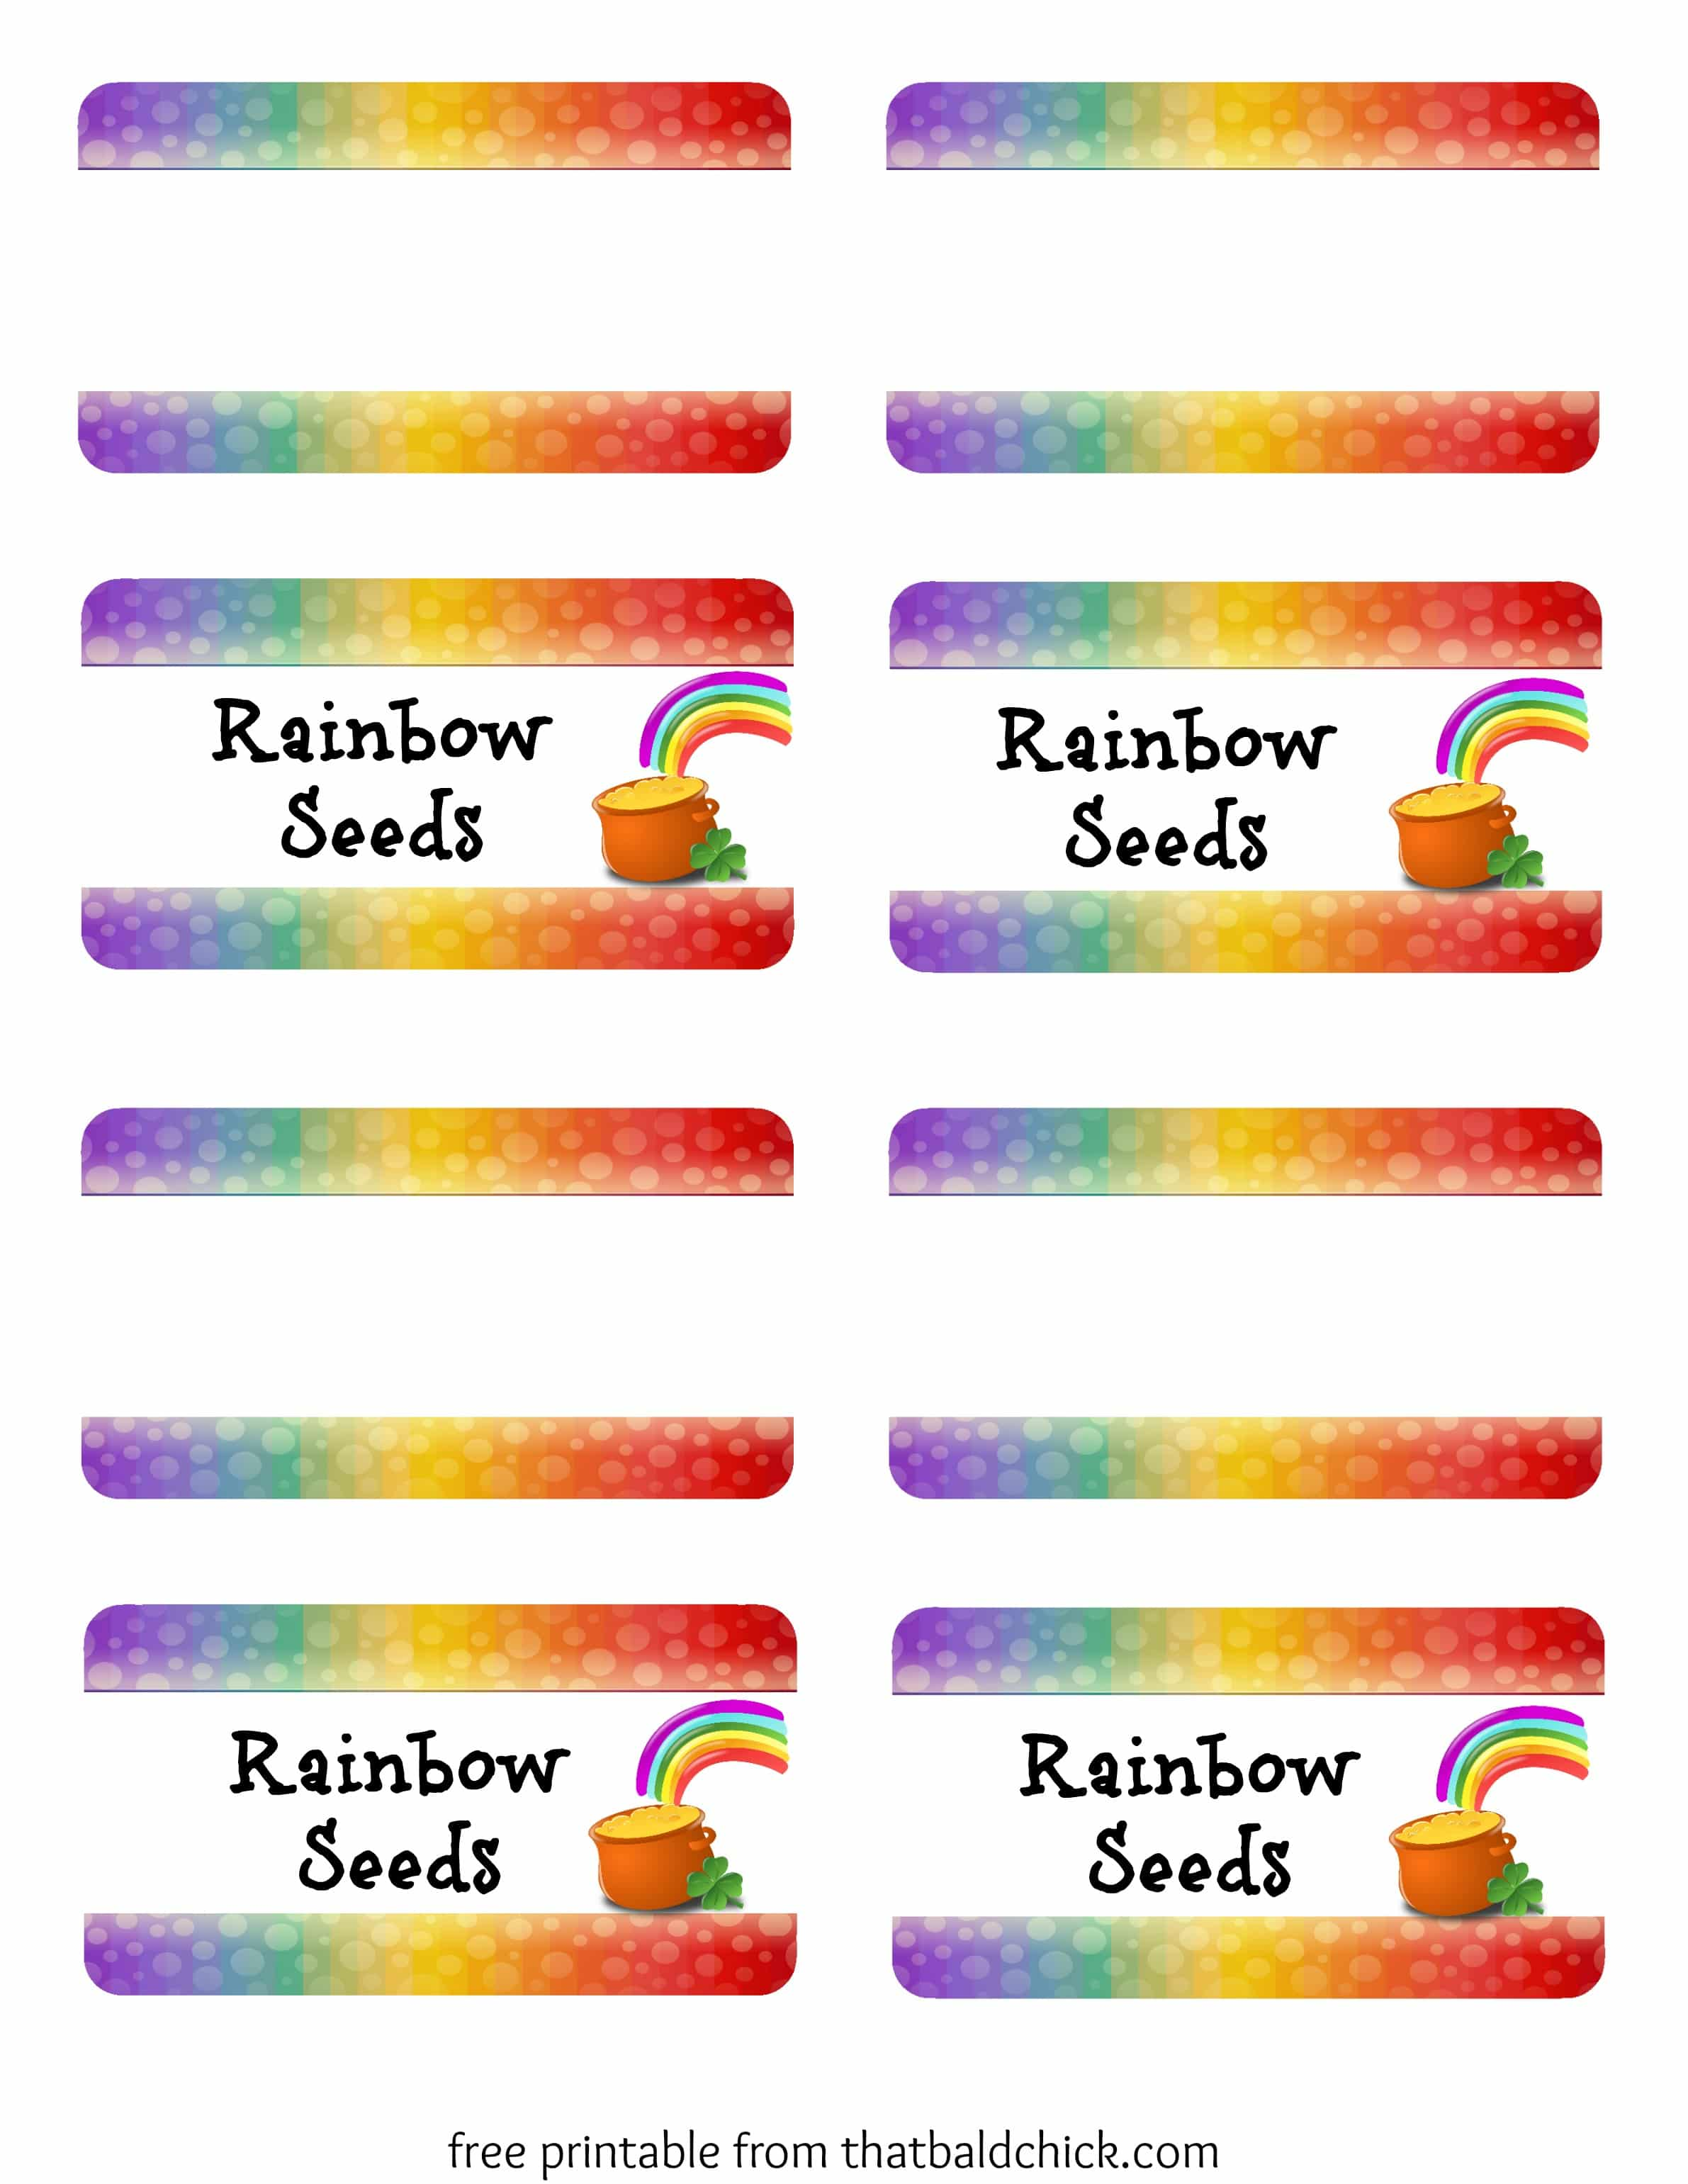 Rainbow Seeds Treat - free printable bag topper at thatbaldchick.com